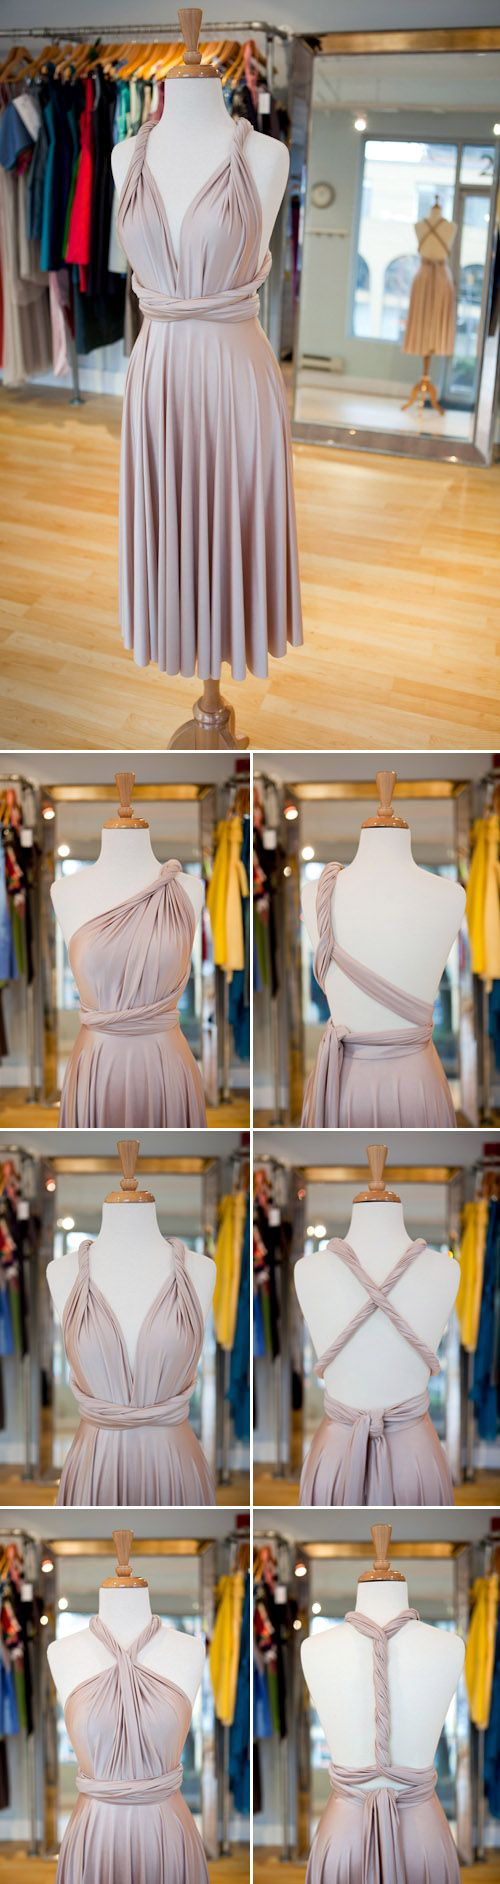 bellanaija-bridesmaid-two-birds-bridesmaids-dress